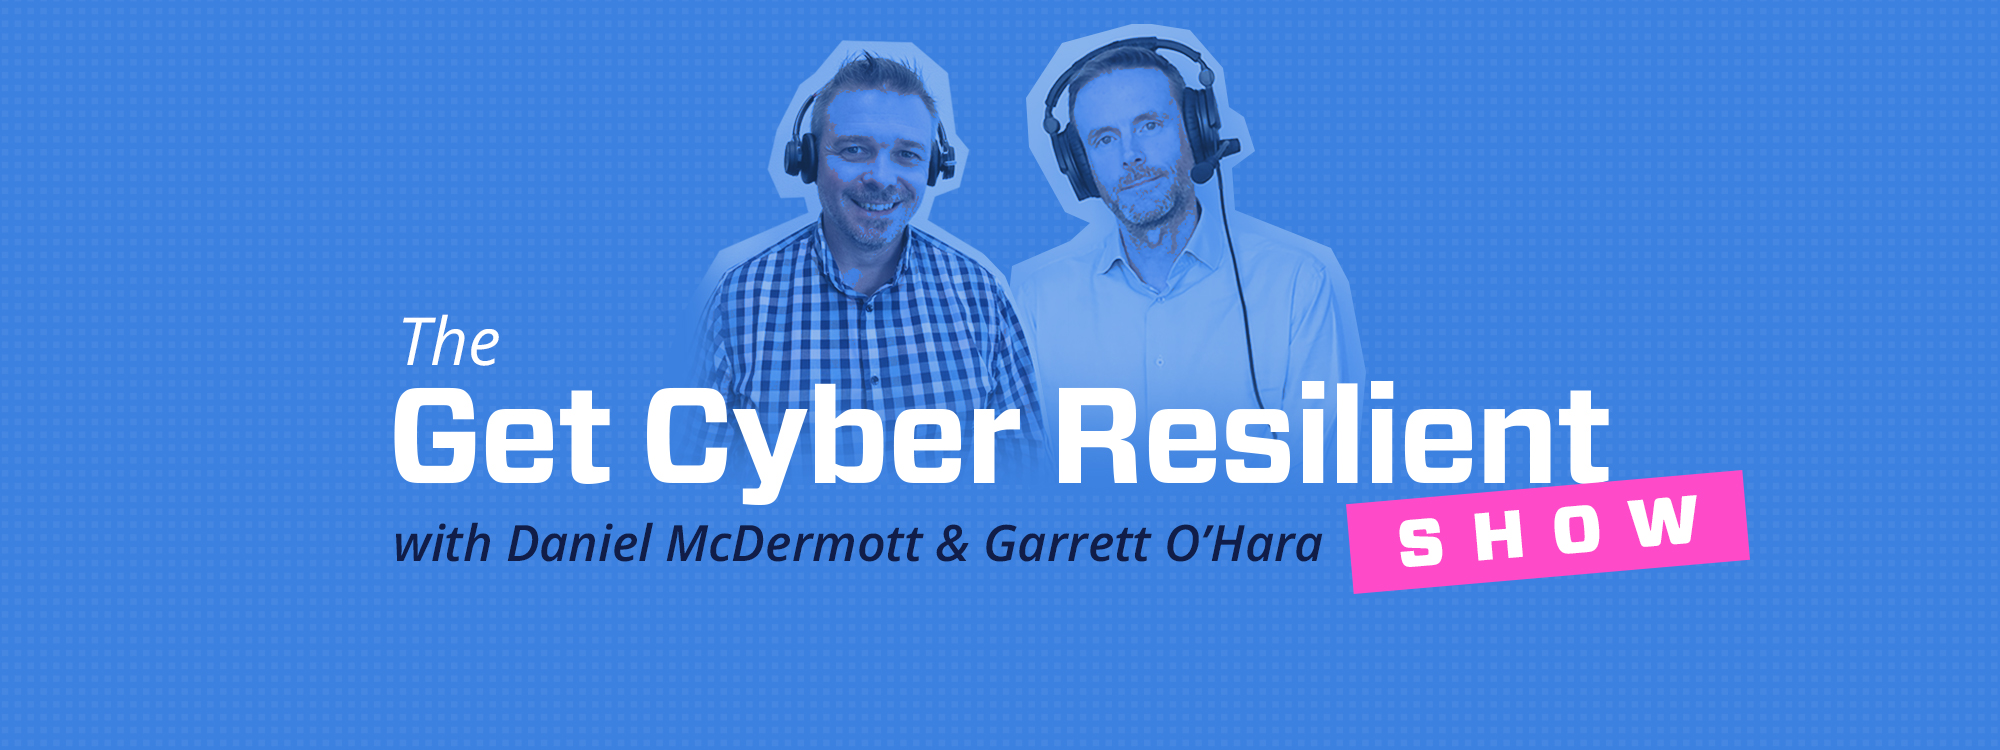 The Get Cyber Resilient show Episode #35